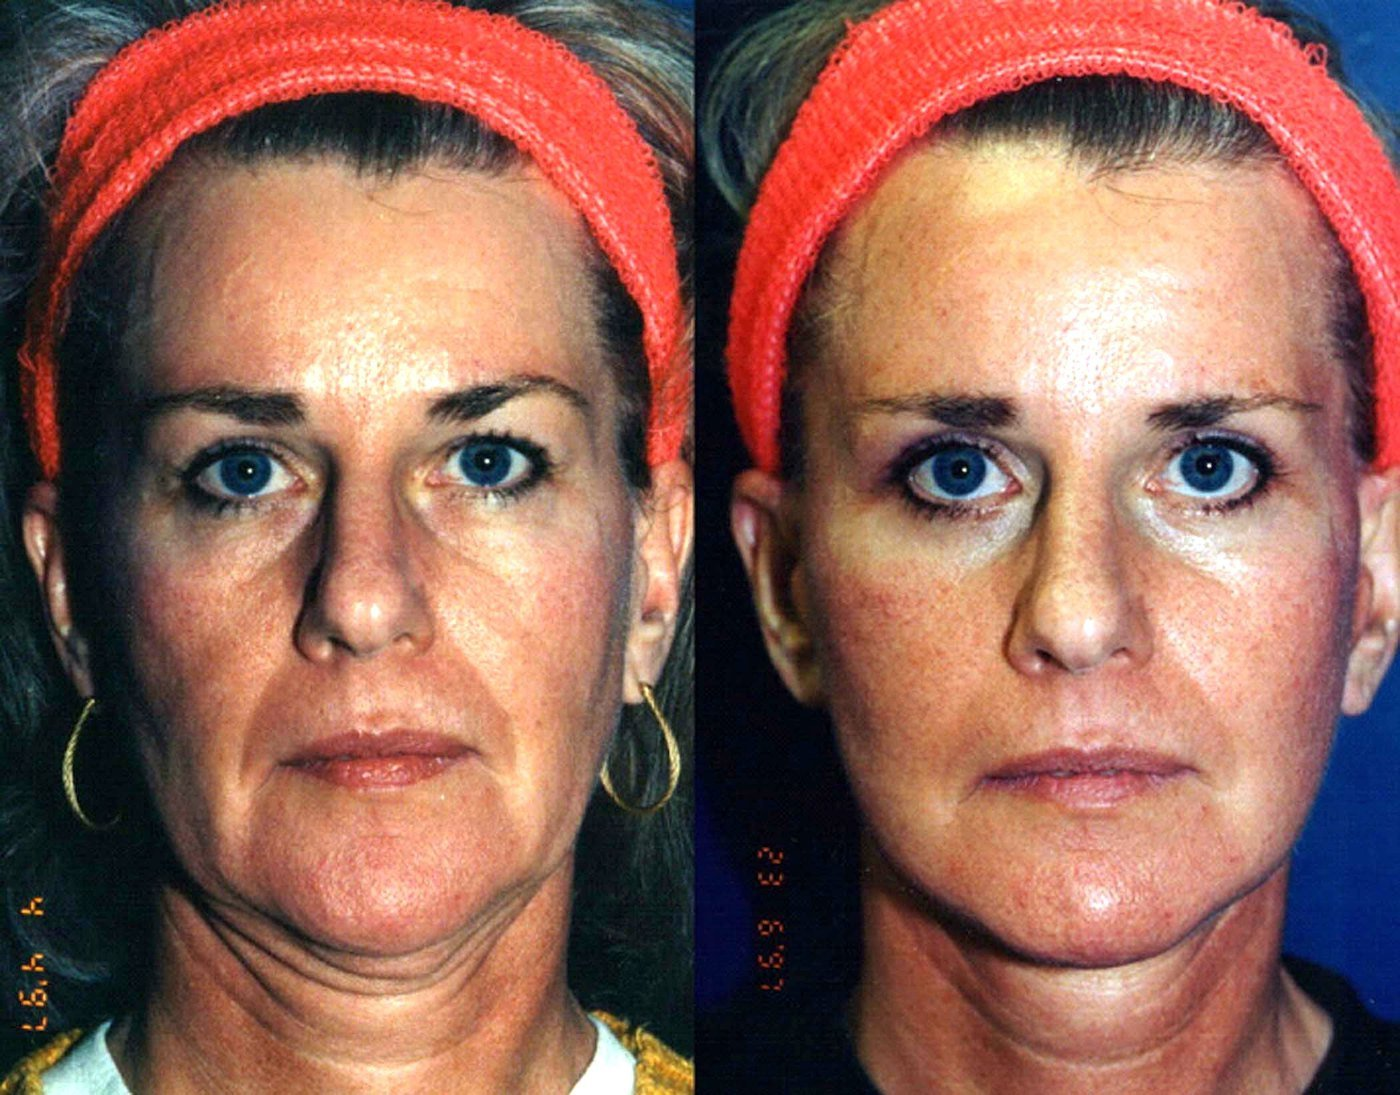 47 year old facelift and eyelids, six month follow-up front view